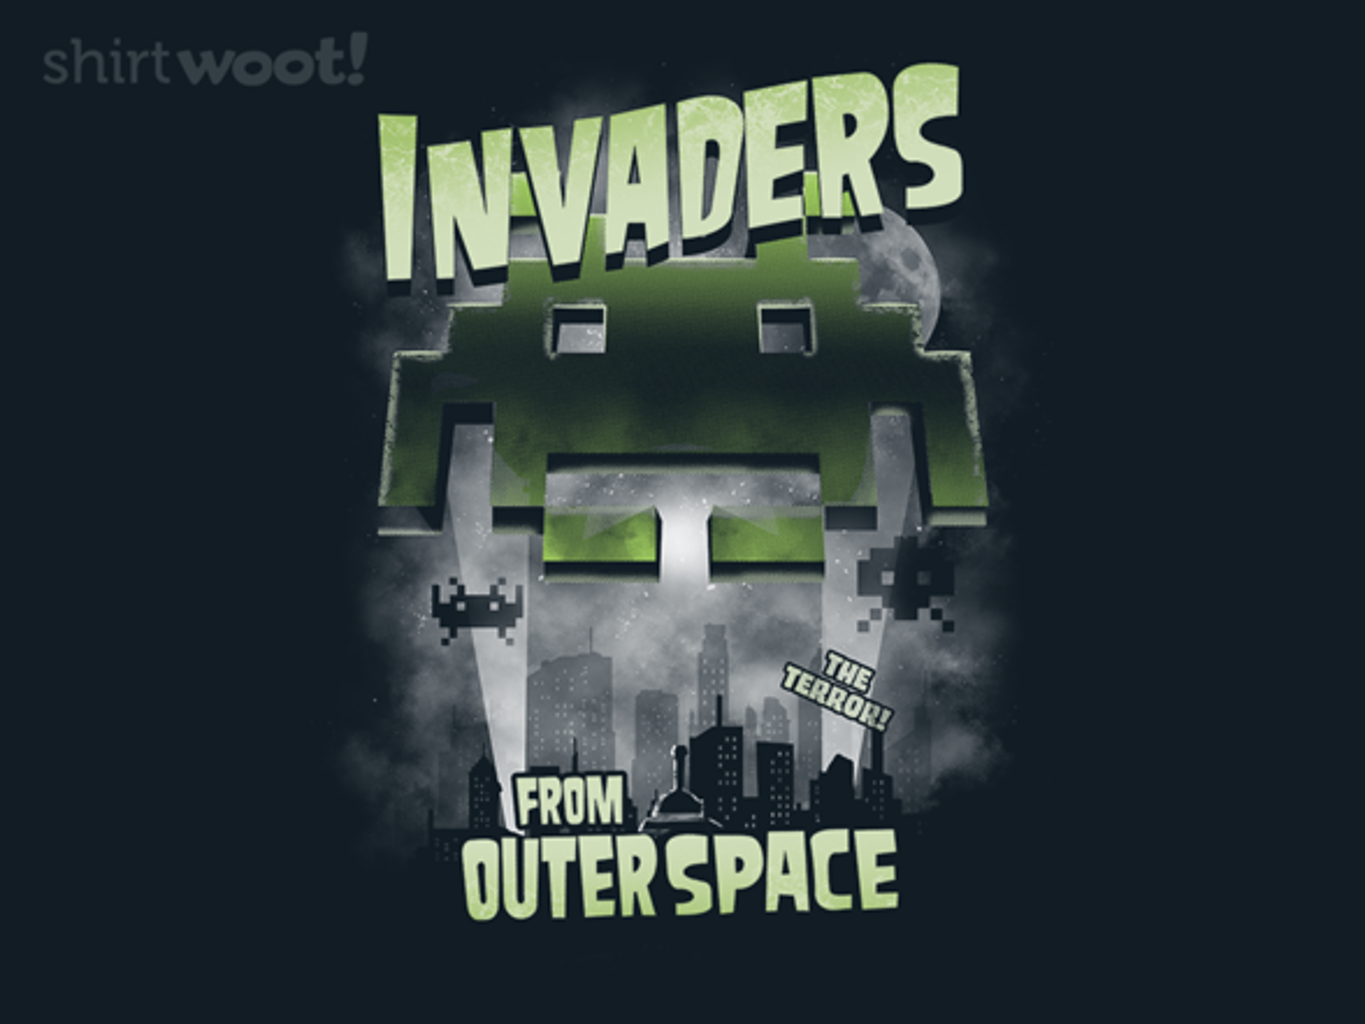 Woot!: Invaders from Outer Space